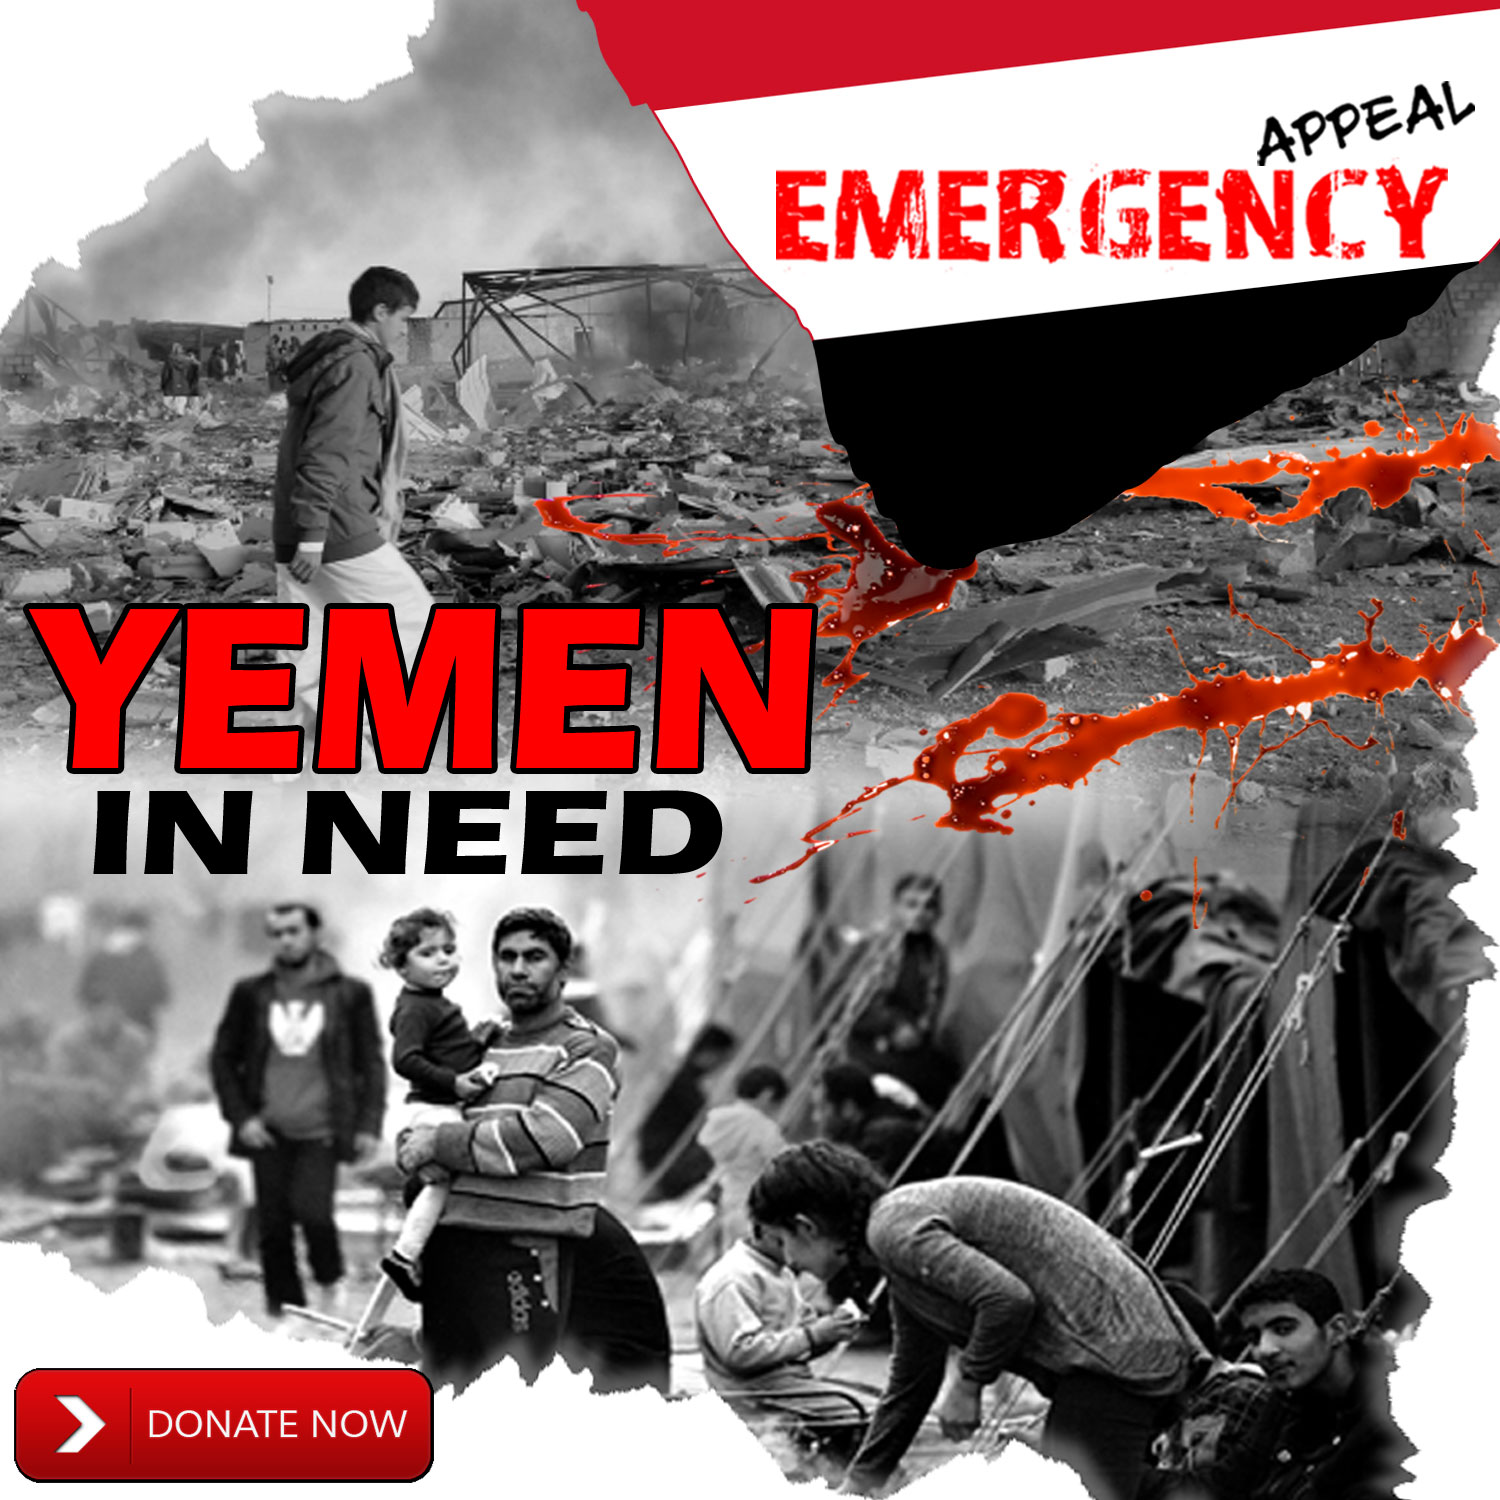 Donate for Yemen Emergency Appeal. 100% Donation Policy.